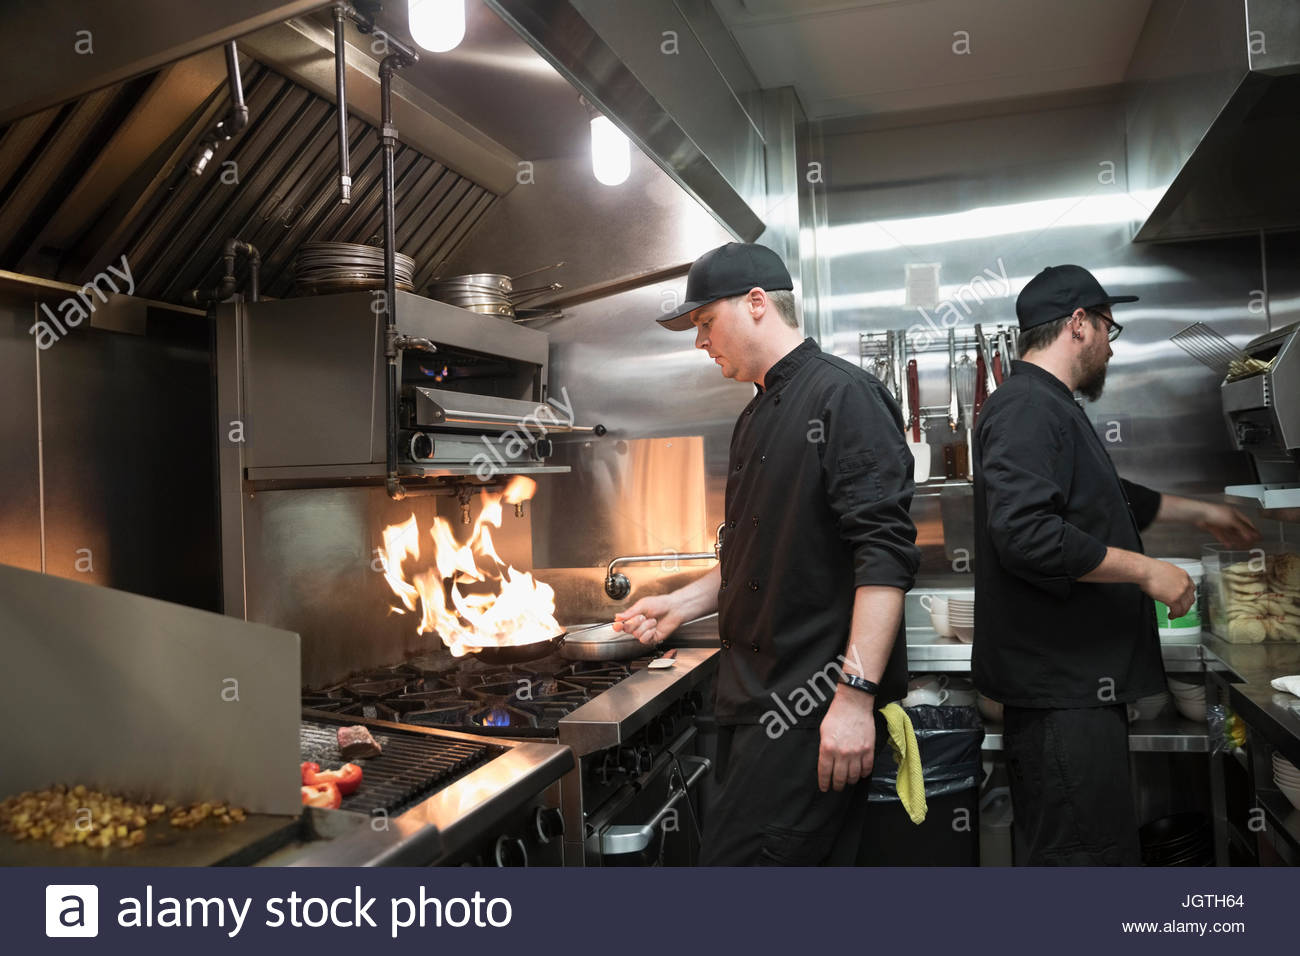 Line cooks preparing food, sauteing at stove in restaurant kitchen - Stock Image